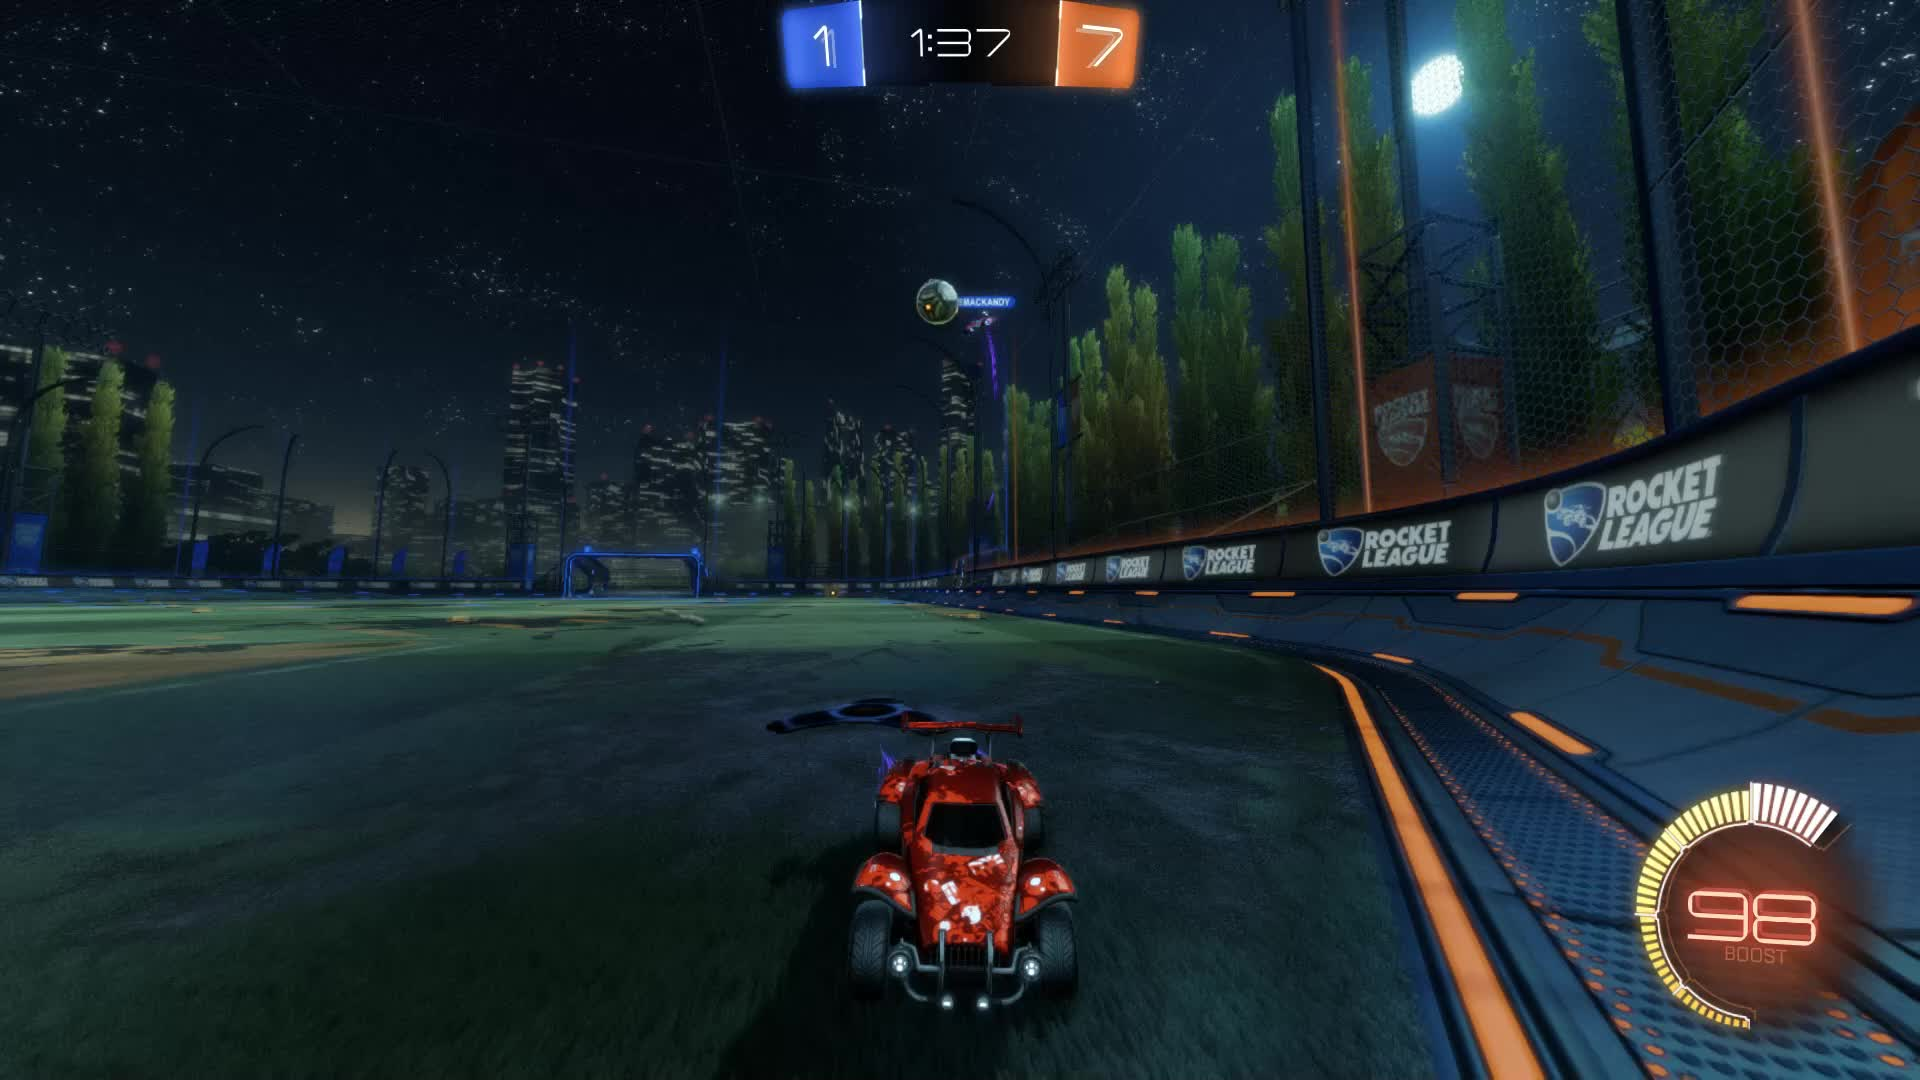 Gif Your Game, GifYourGame, Goal, Nyhx, Rocket League, RocketLeague, ⏱️ Goal 9: Nyhx GIFs